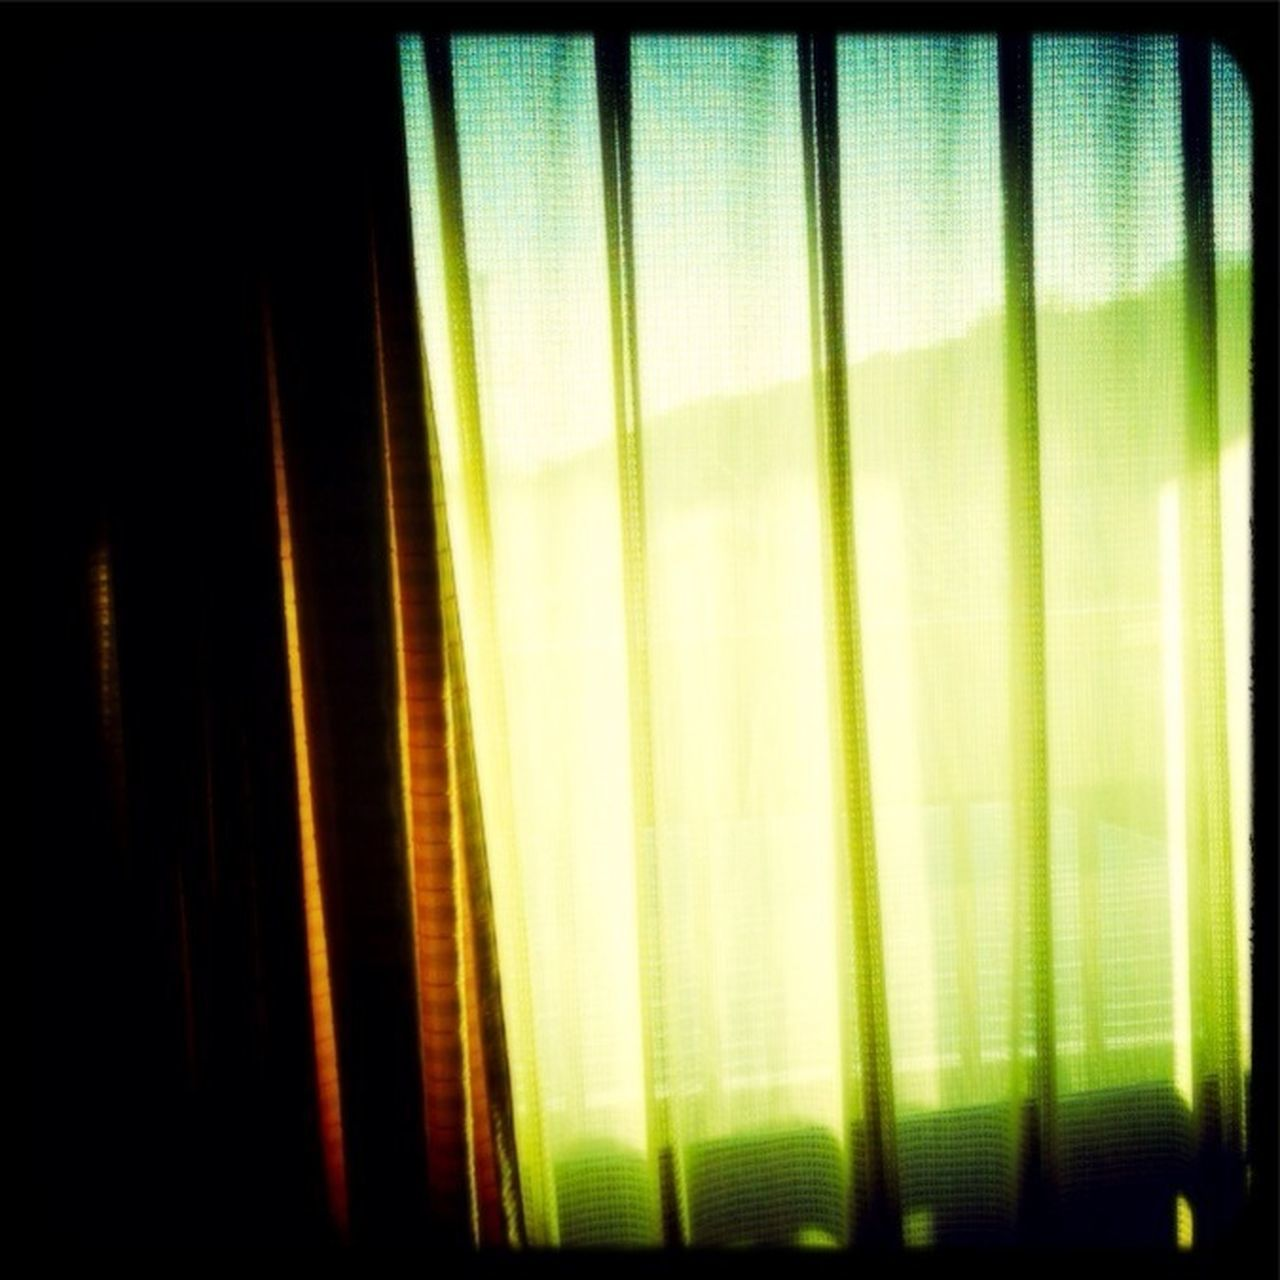 curtain, drapes, window, indoors, no people, blinds, day, close-up, nature